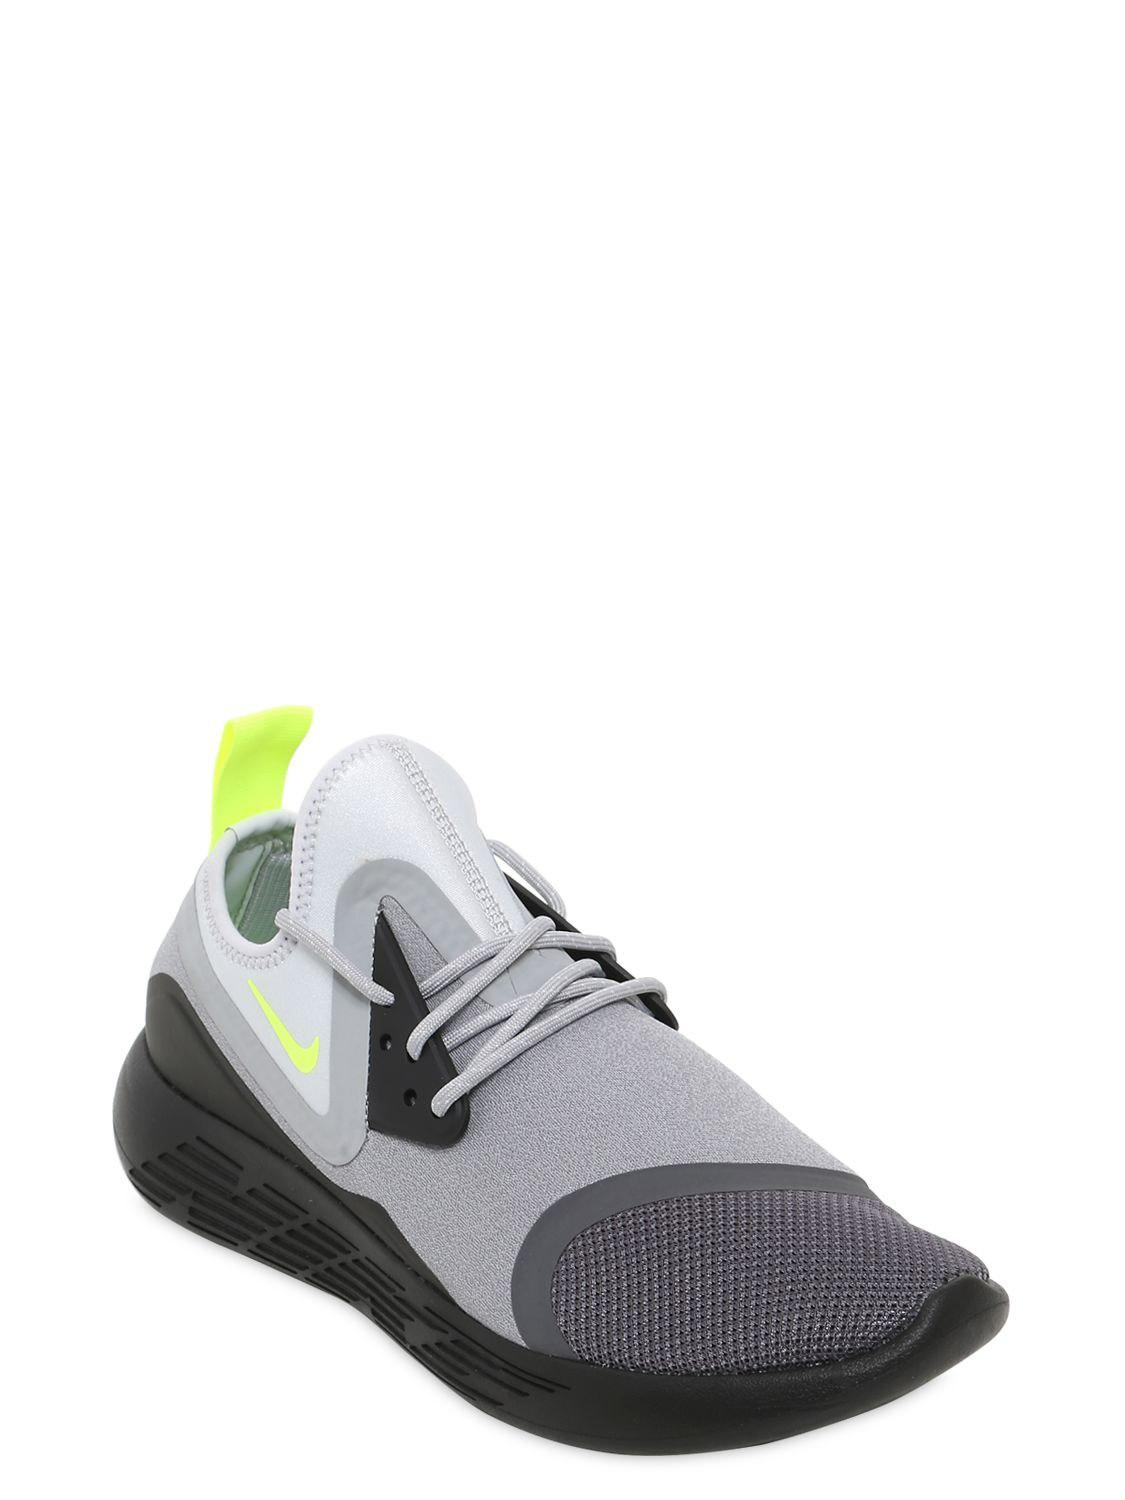 5719c34aad05 Nike Lunar Charge Bn Sneakers in Gray for Men - Lyst